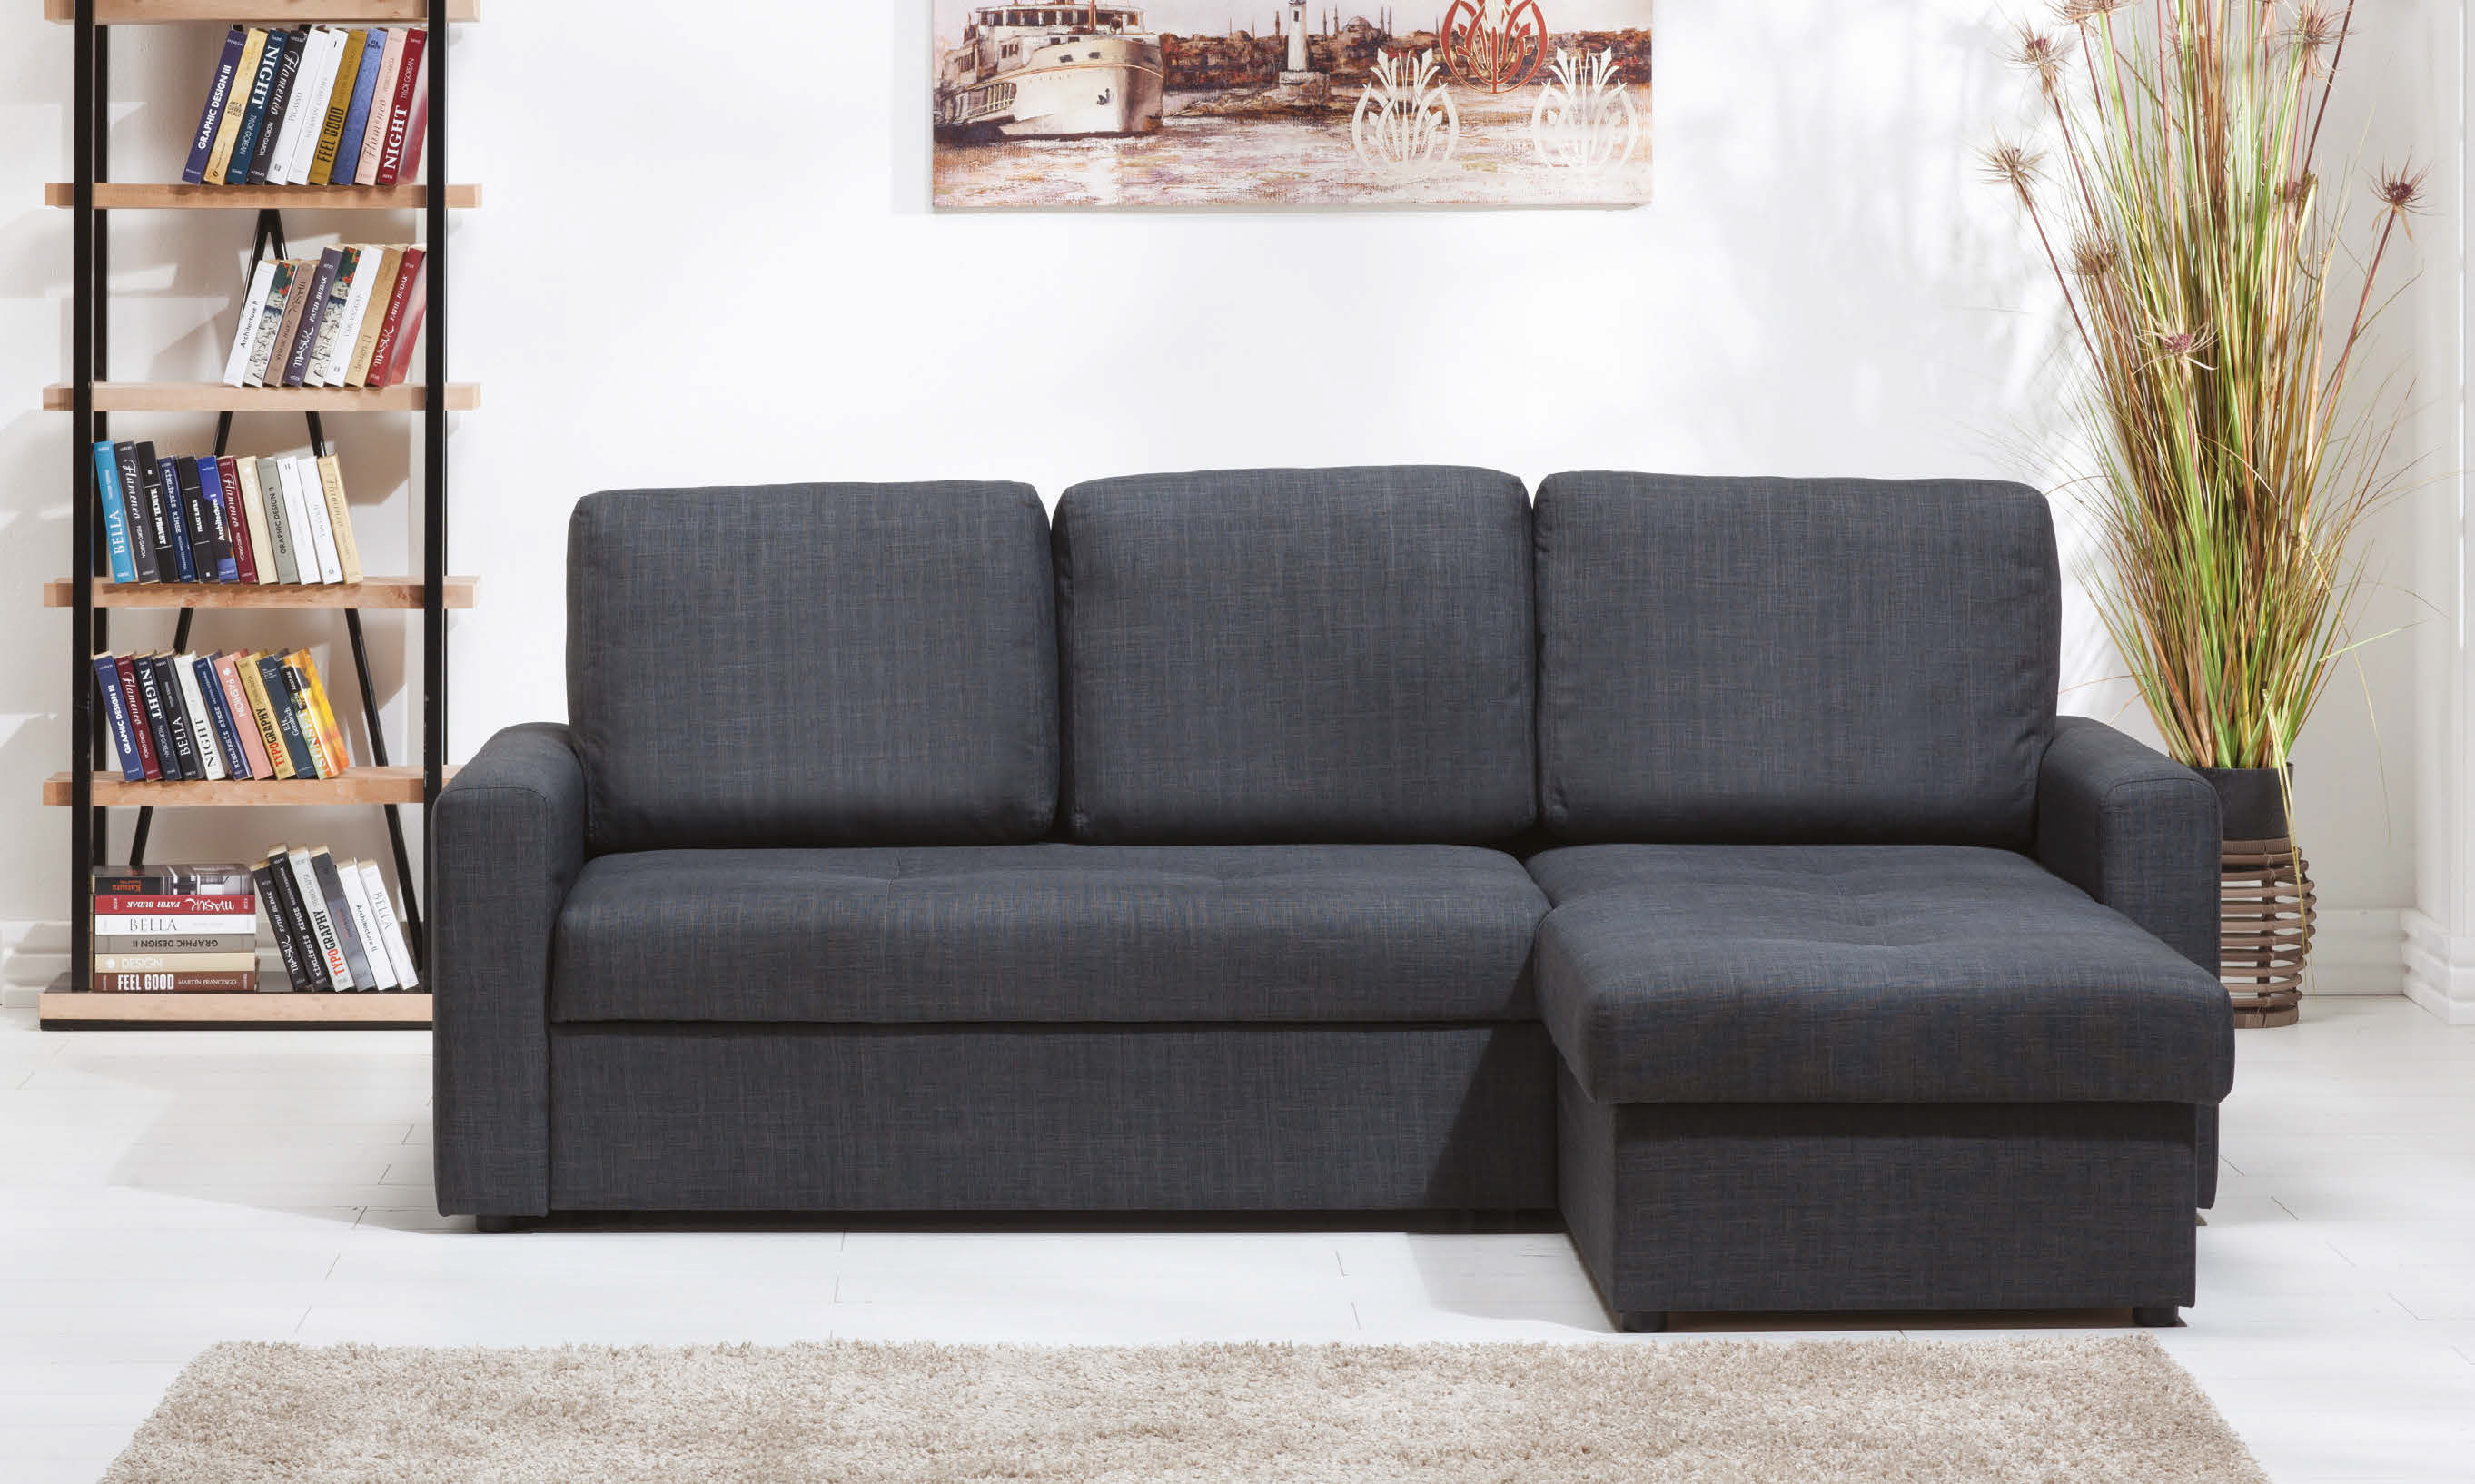 Flynn Coton Antrasit Sectional Sofa by Istikbal (Sunset)